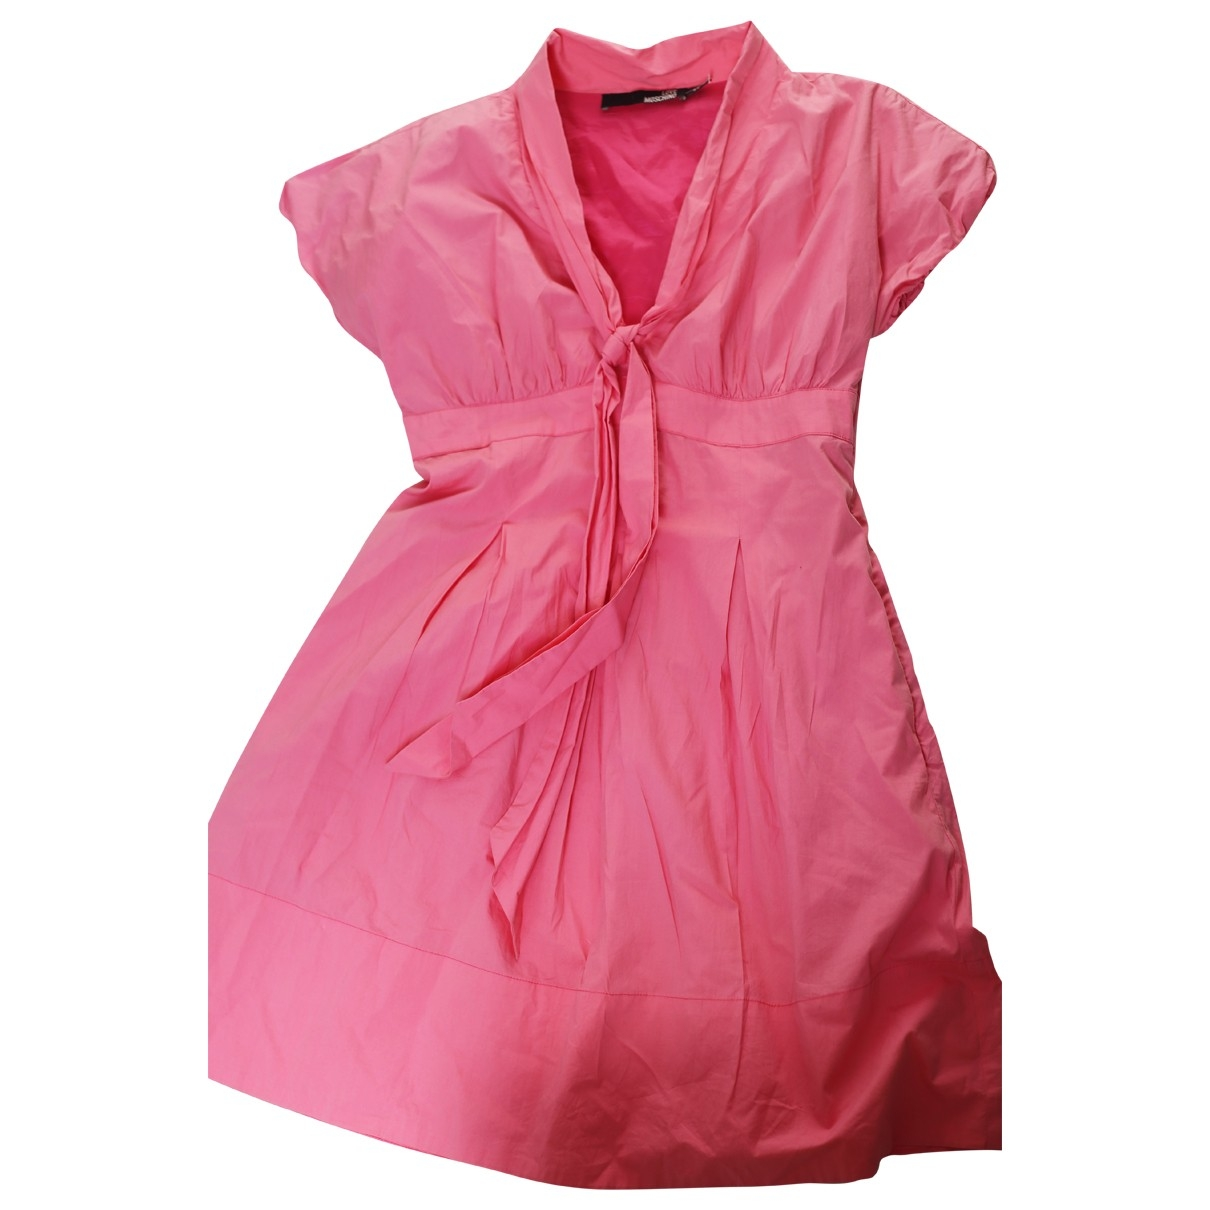 Moschino Love \N Pink dress for Women 42 IT